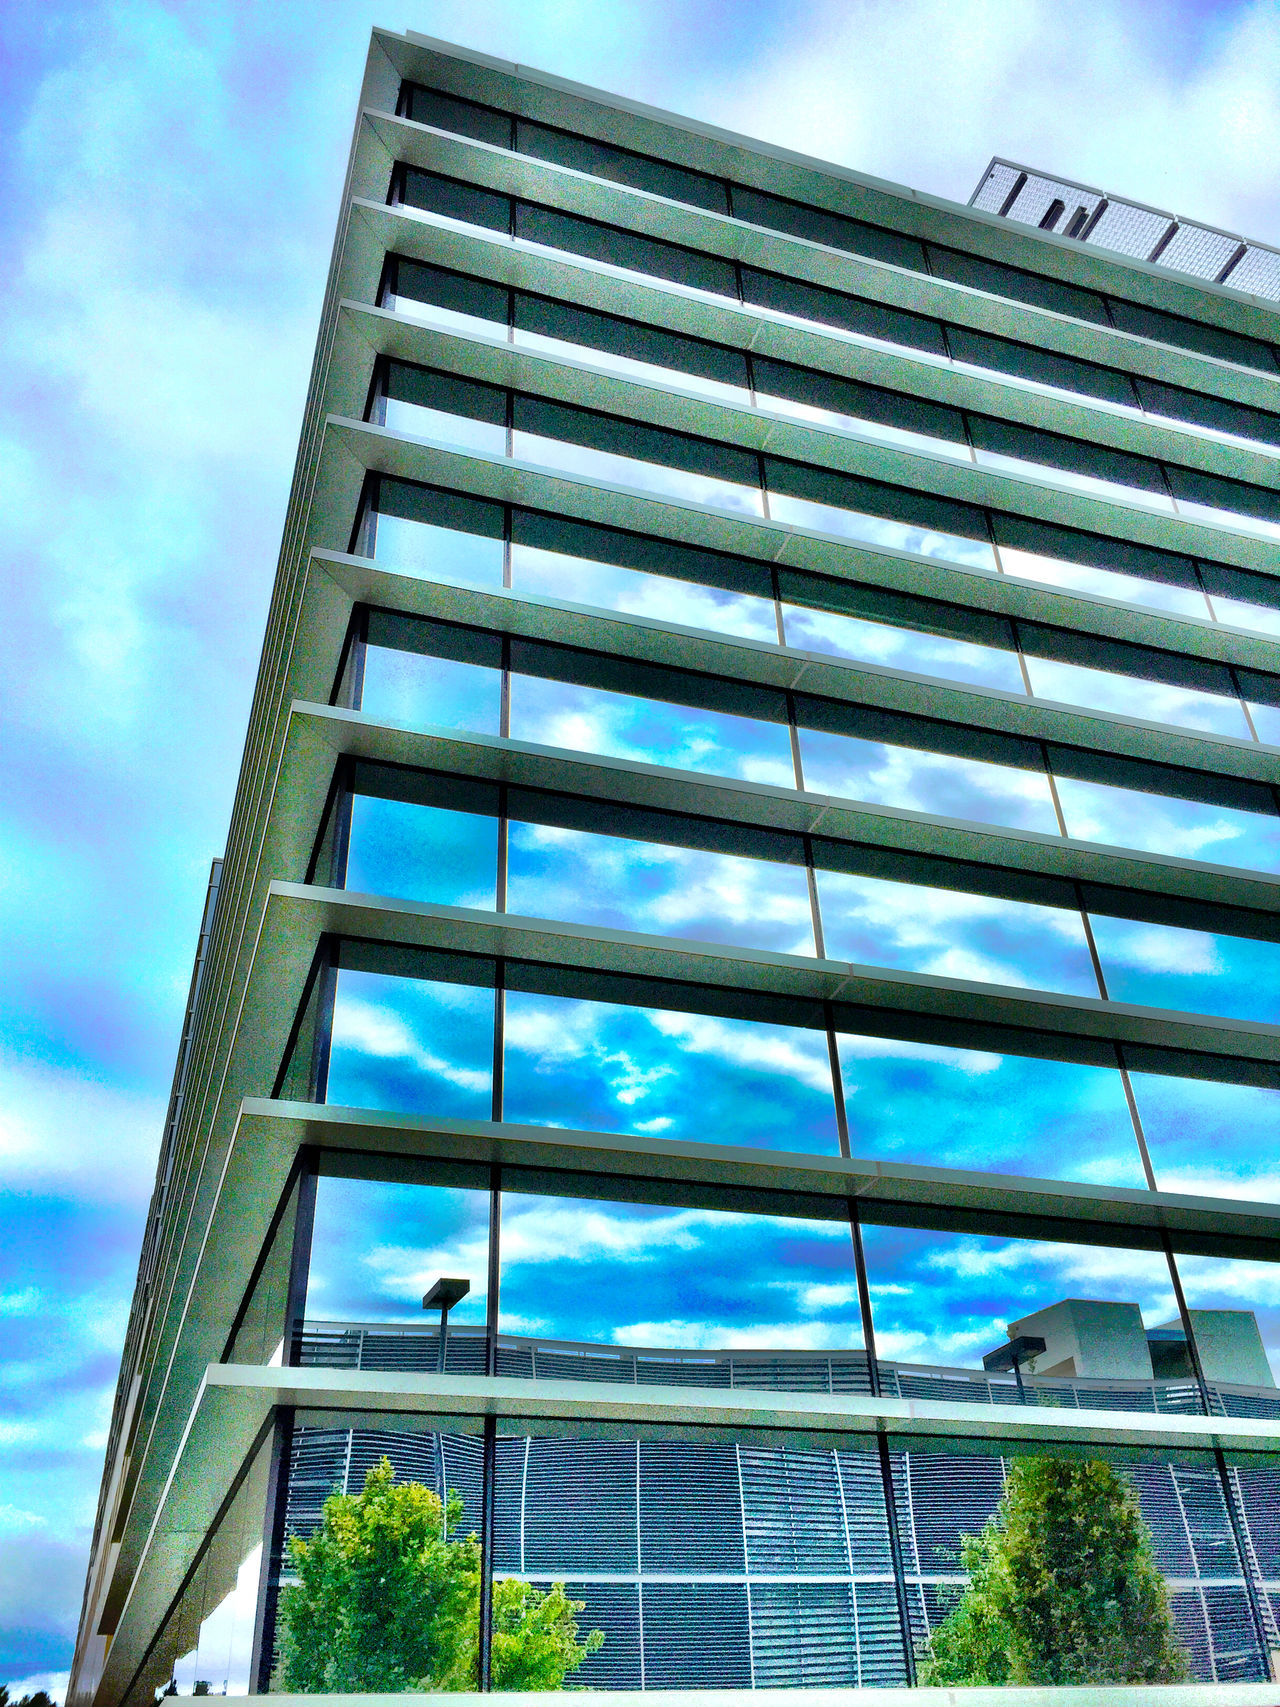 """""""Corner Office Reflections"""" Gorgeous glass architecture at John Muir Medical Center reflecting clouds, sky and adjacent buildings. Corneroffice Architecture_collection Architecture Glassreflections Glassarchitecture Glass Urban Sky"""